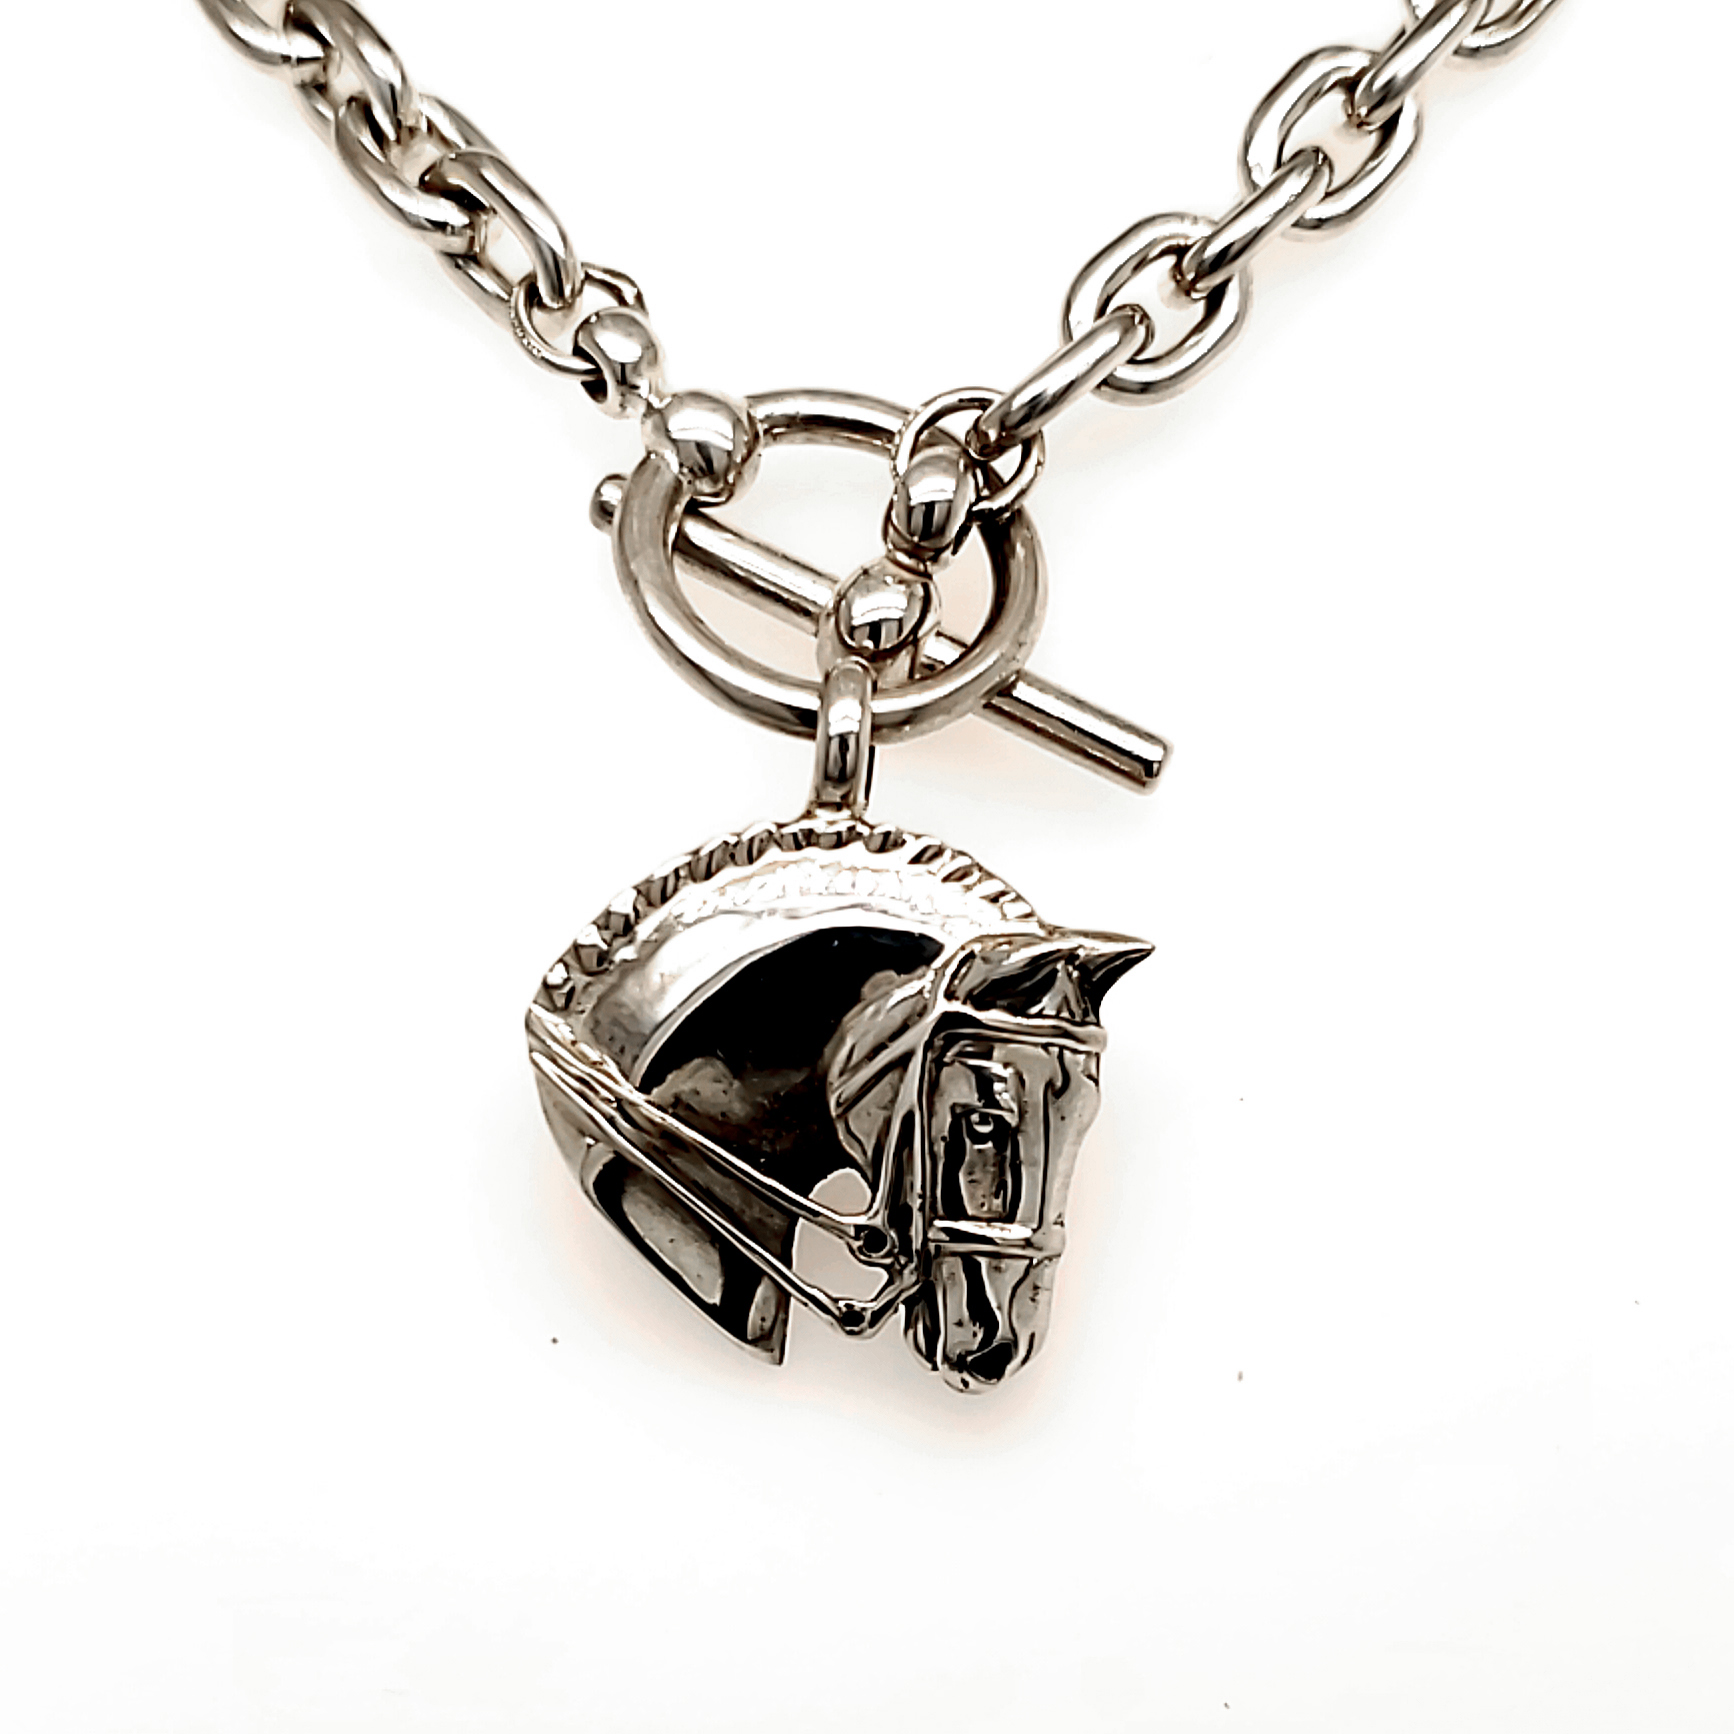 Jane Heart Dressage Horse Necklace